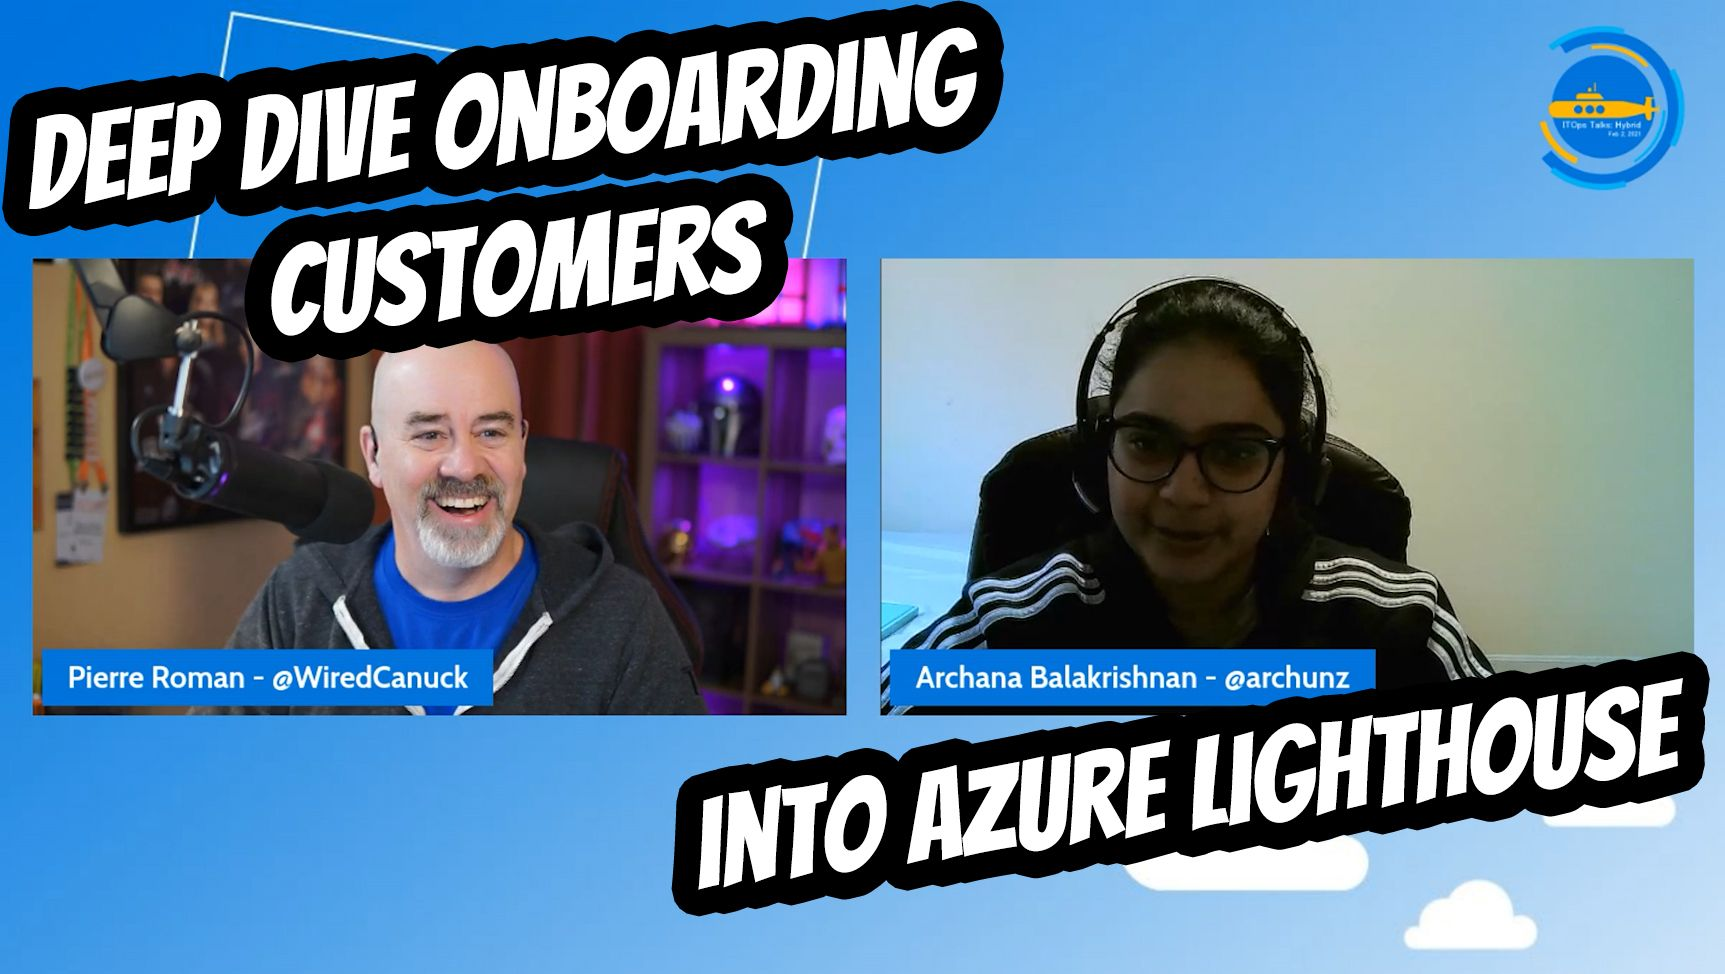 OPS118: Deep dive on Onboarding customers into Lighthouse